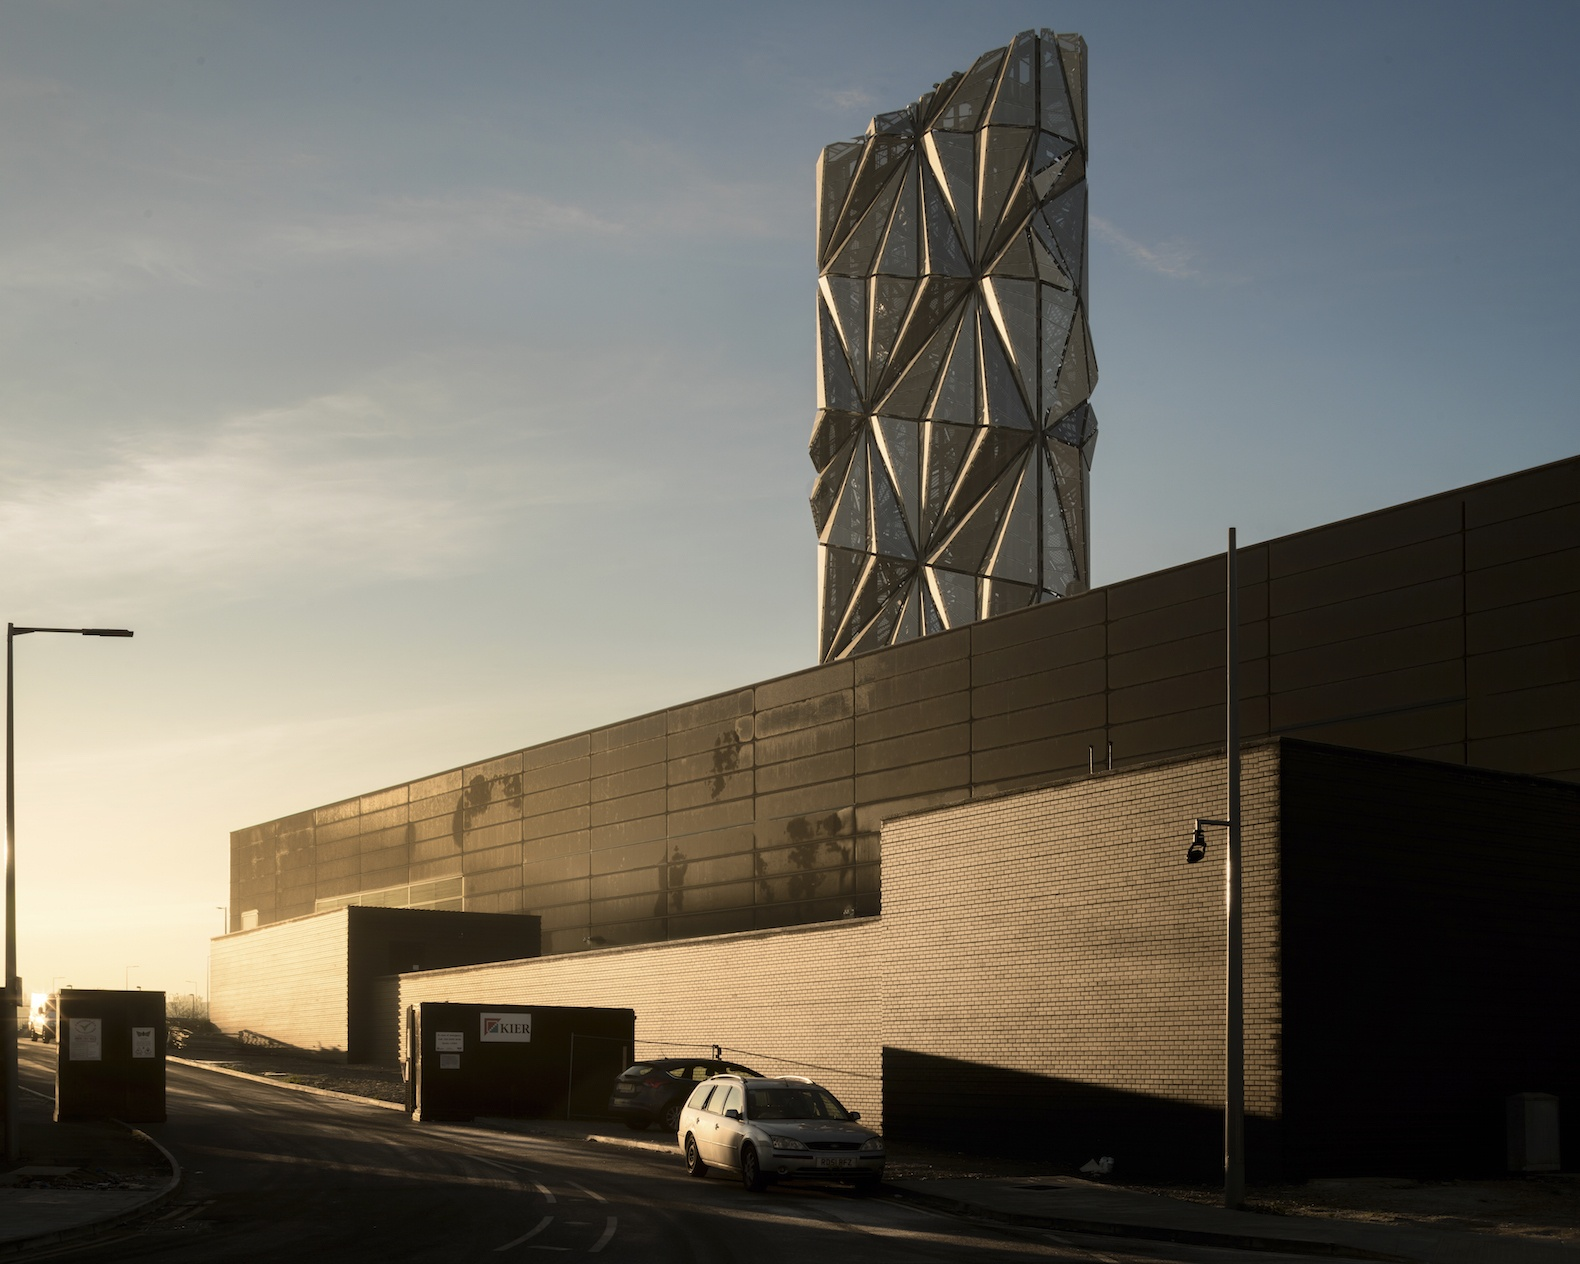 greenwich-peninsula-low-carbon-energy-centre-by-c.f.-mller-architects-7